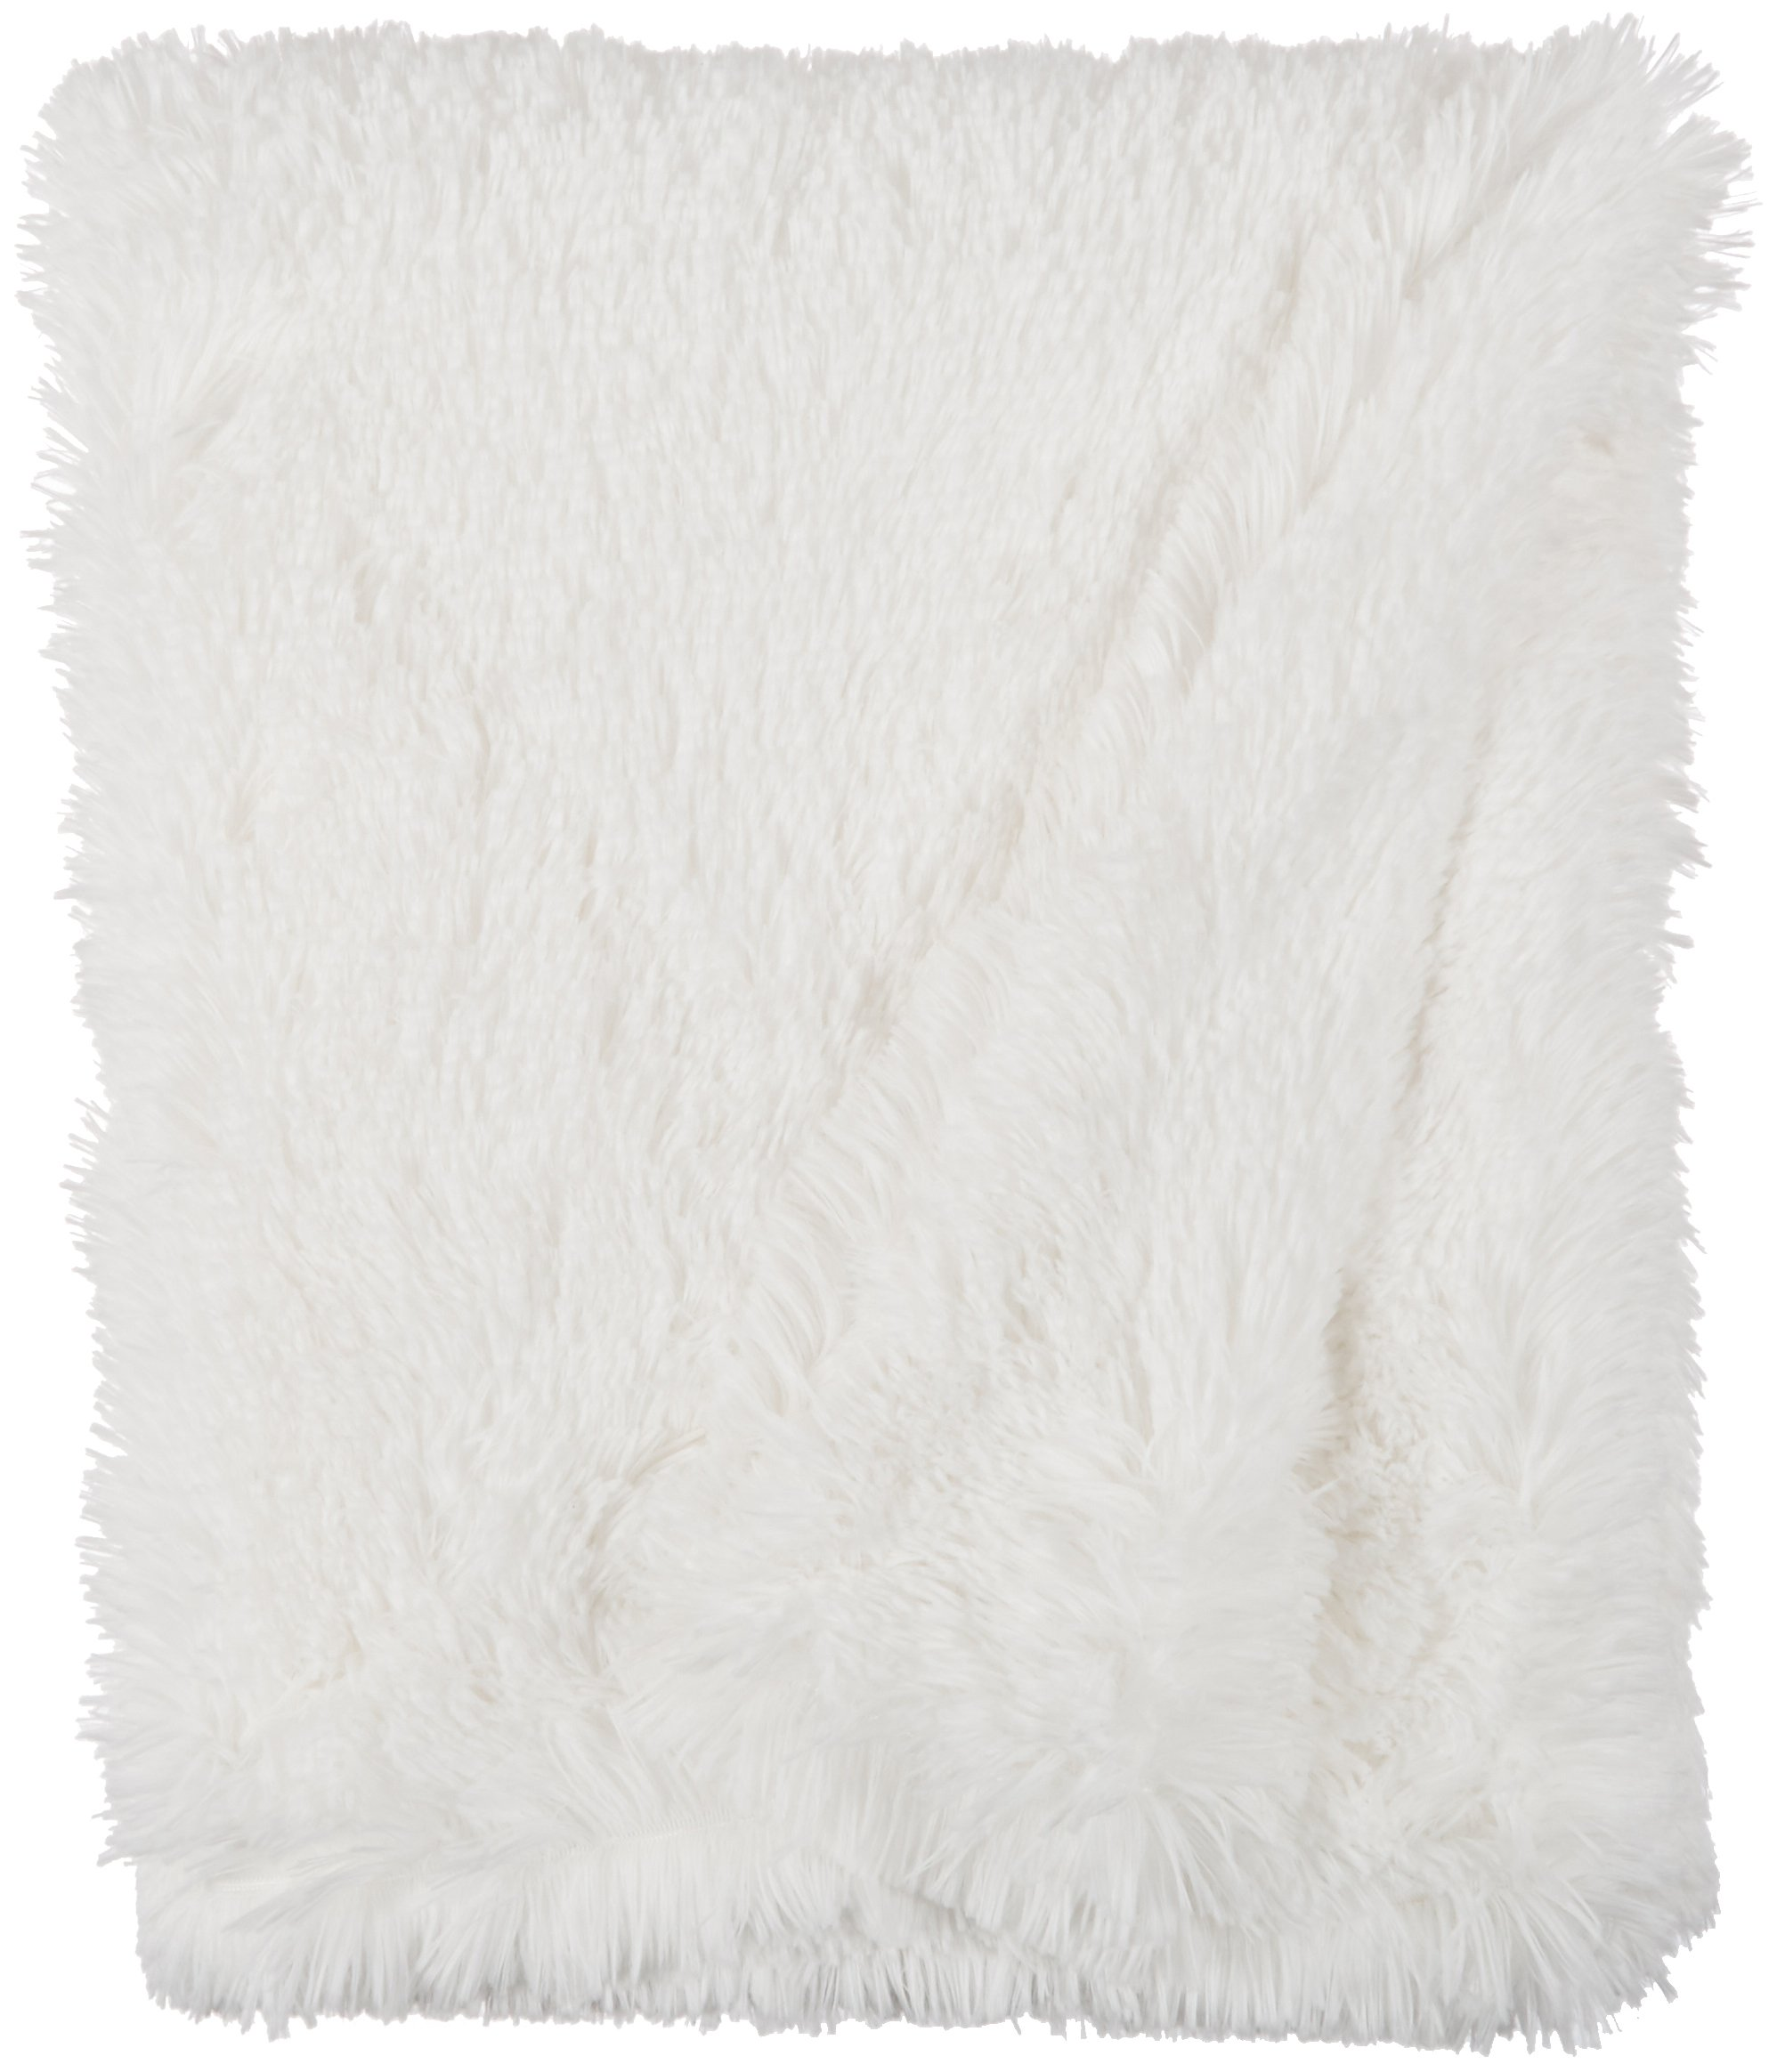 BESSIE AND BARNIE Snow White Luxury Shag Ultra Plush Faux Fur Pet, Dog, Cat, Puppy Super Soft Reversible Blanket (Multiple Sizes)